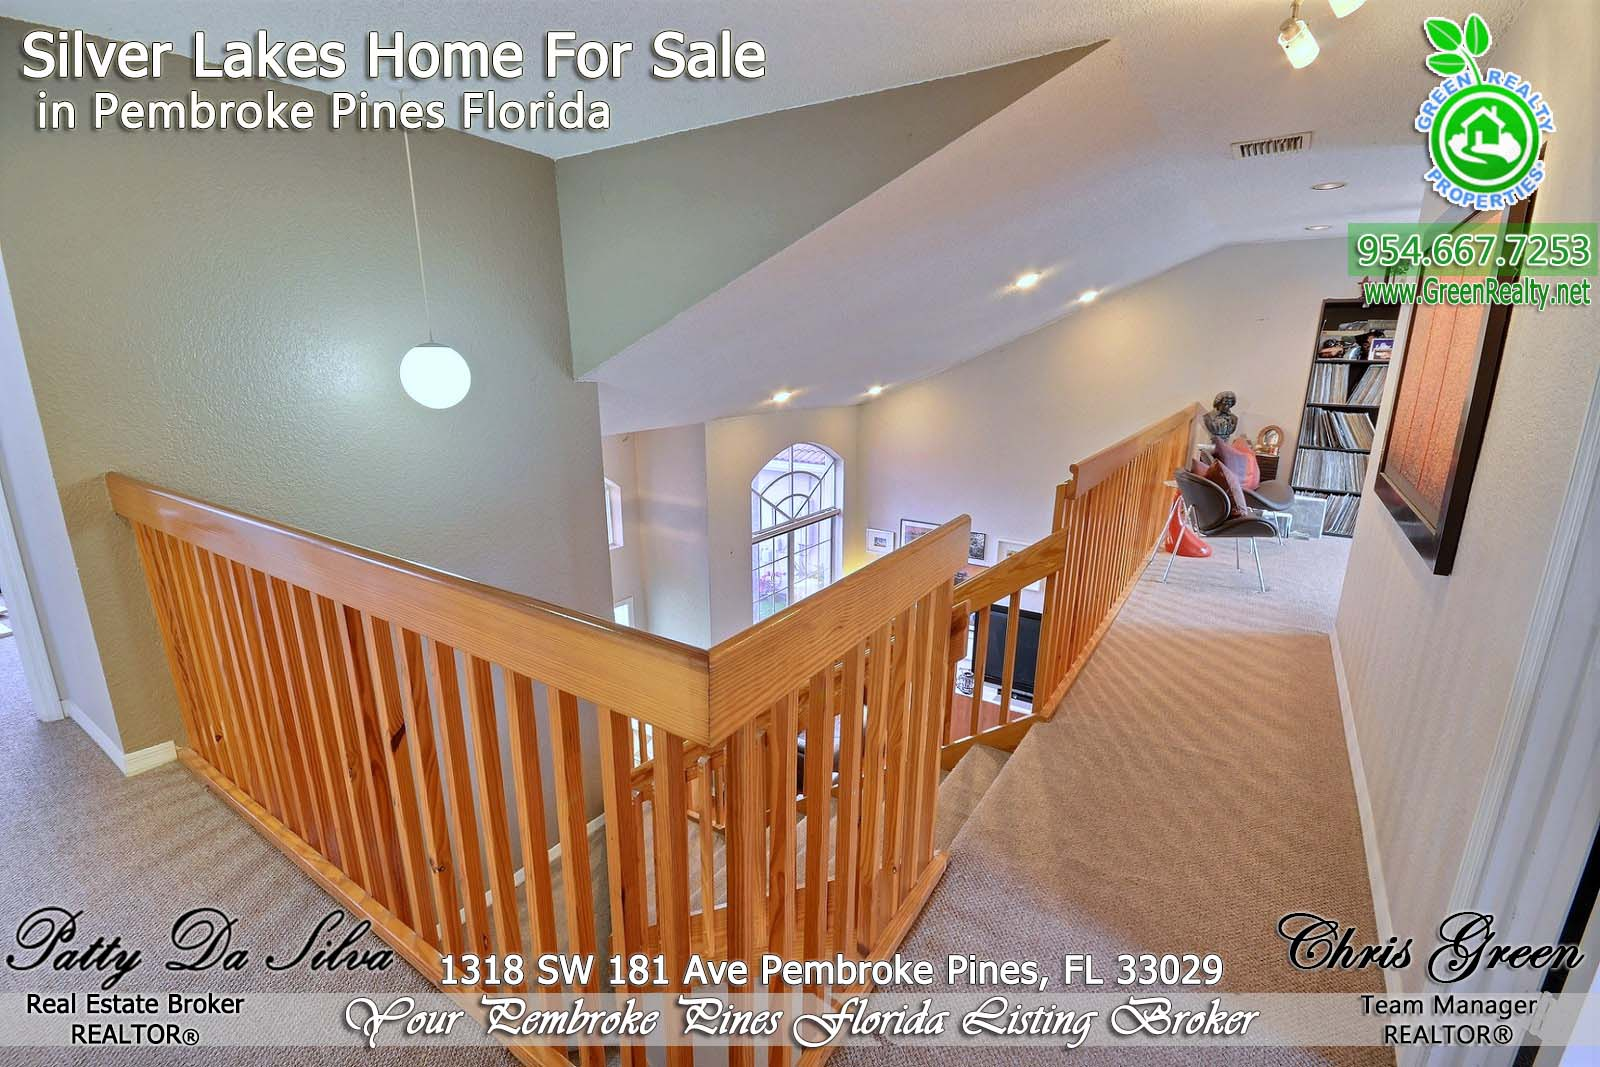 14 Silver Lakes Pembroke Pines Homes For Sale (2)